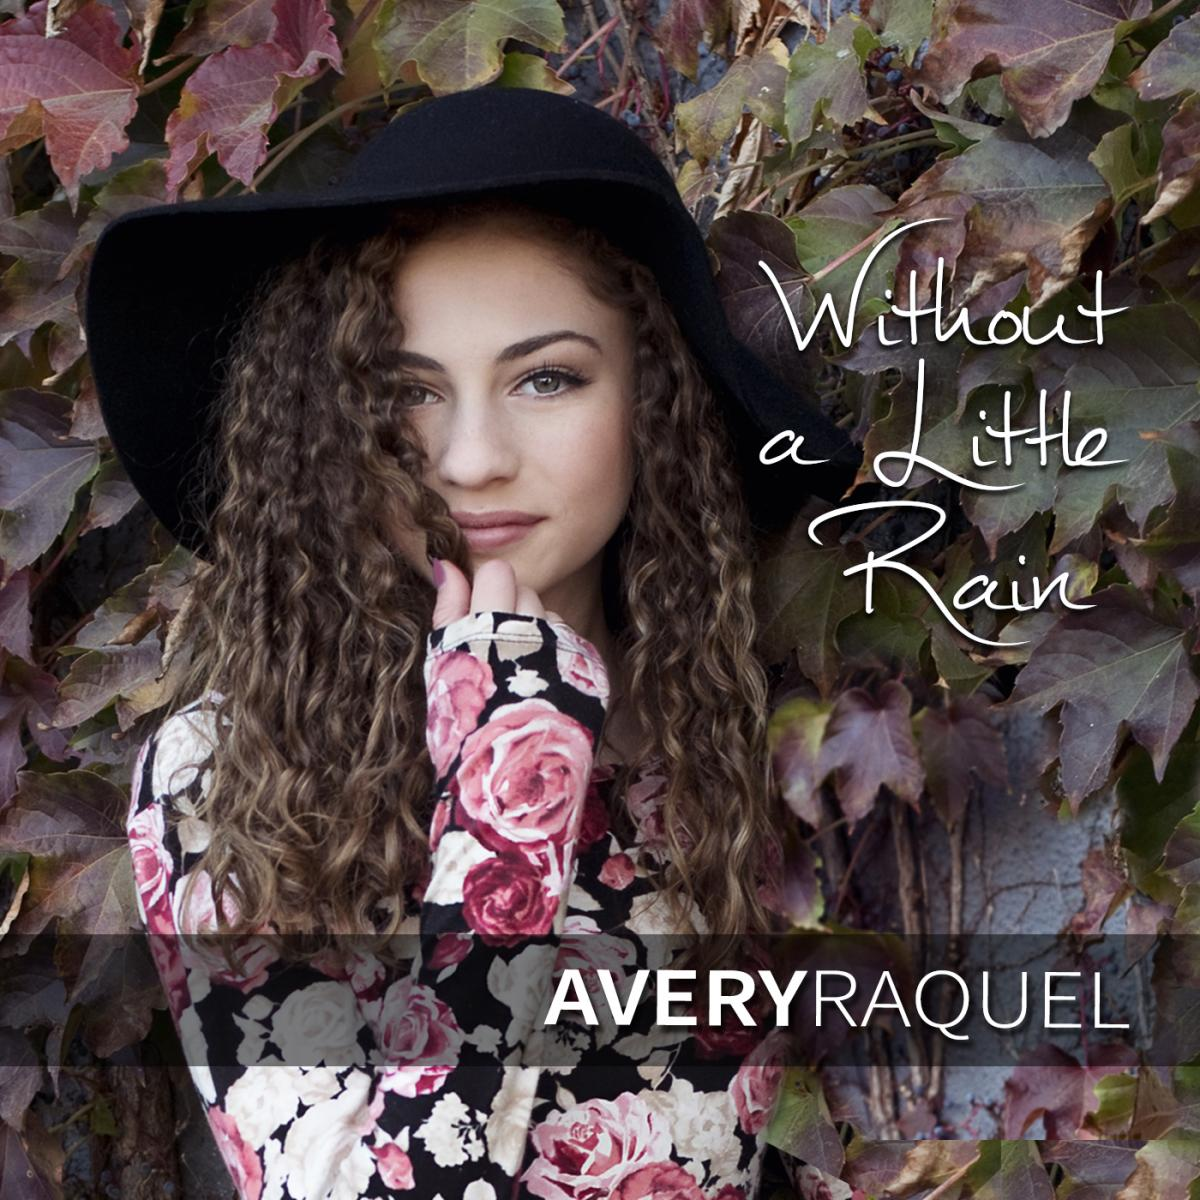 Avery Raquel Without A Little Rain CD Release Concert